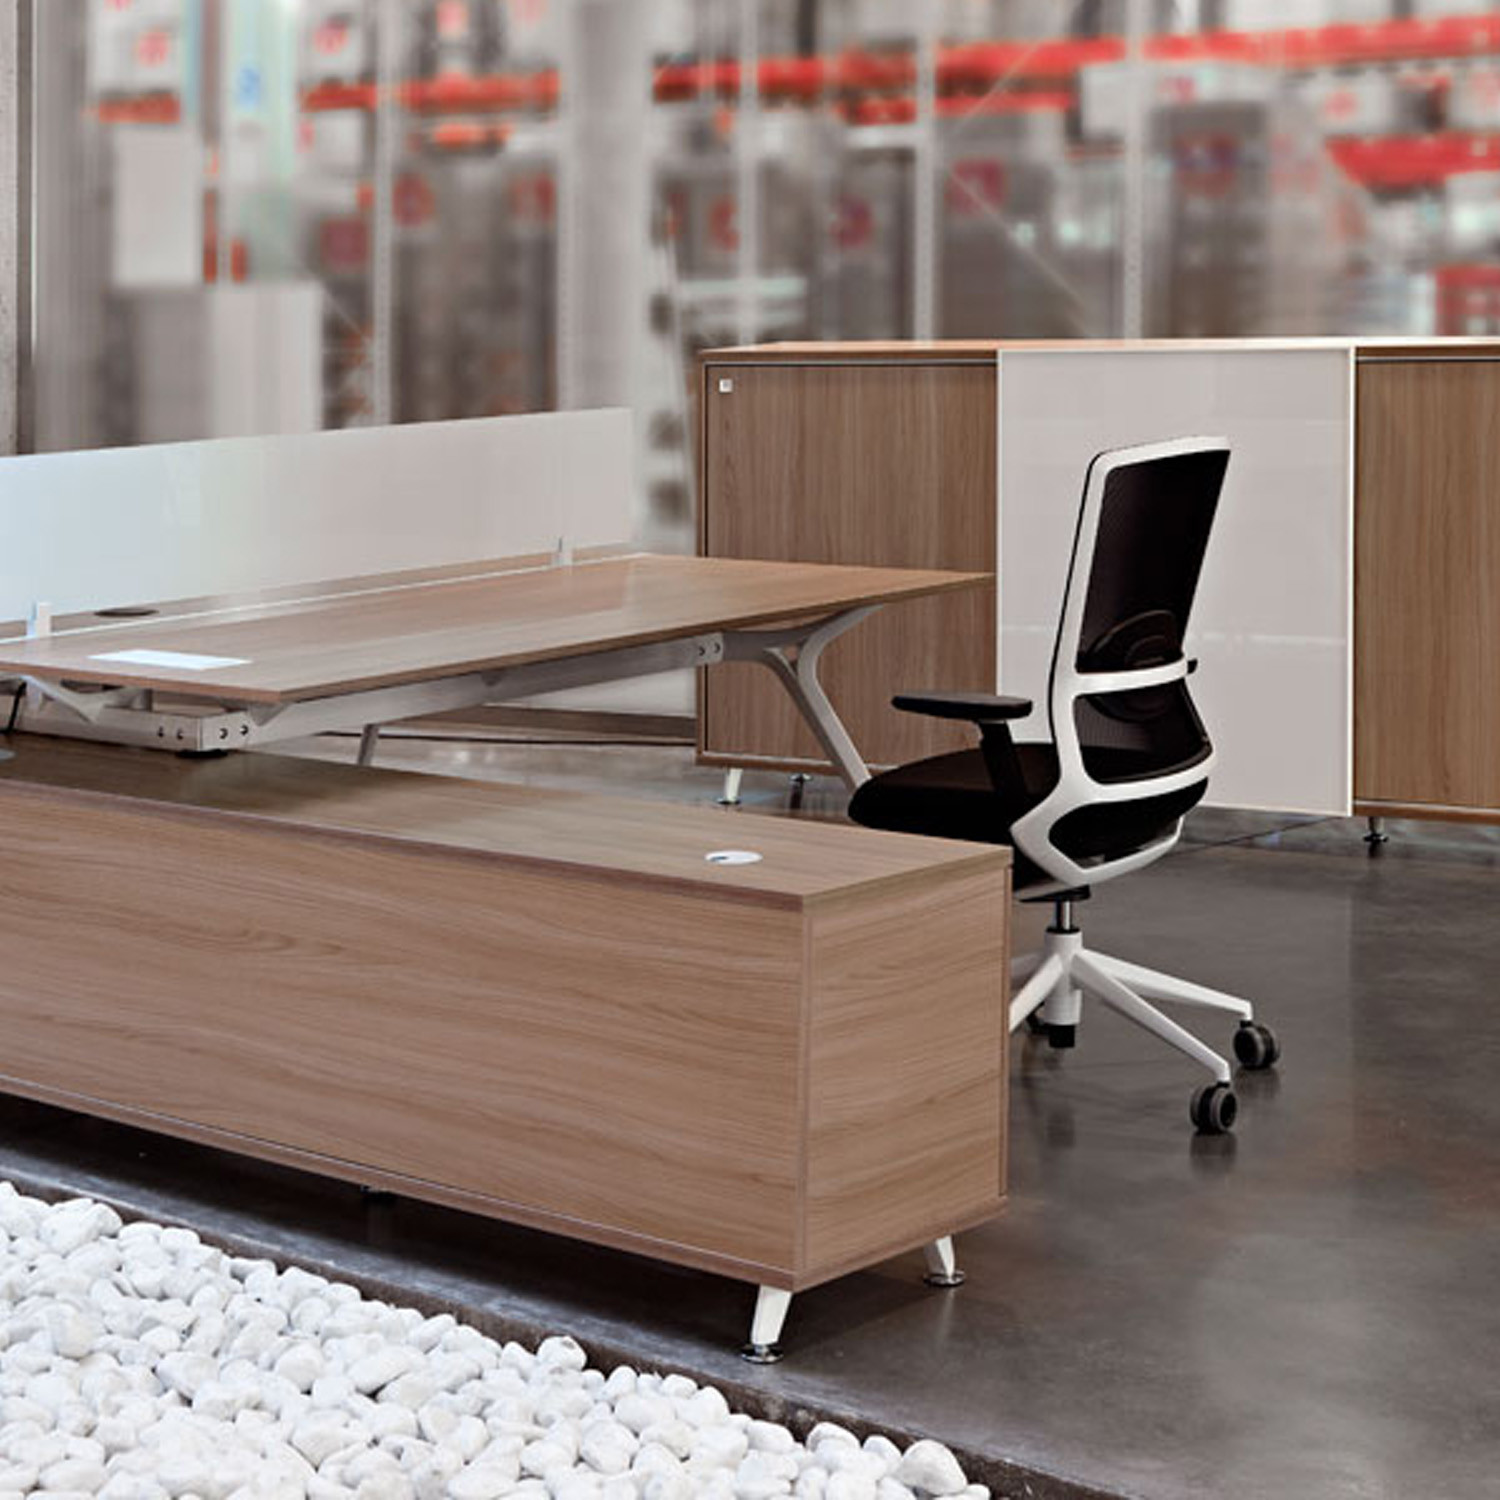 Arkitek Desk with Storage Units by Actiu